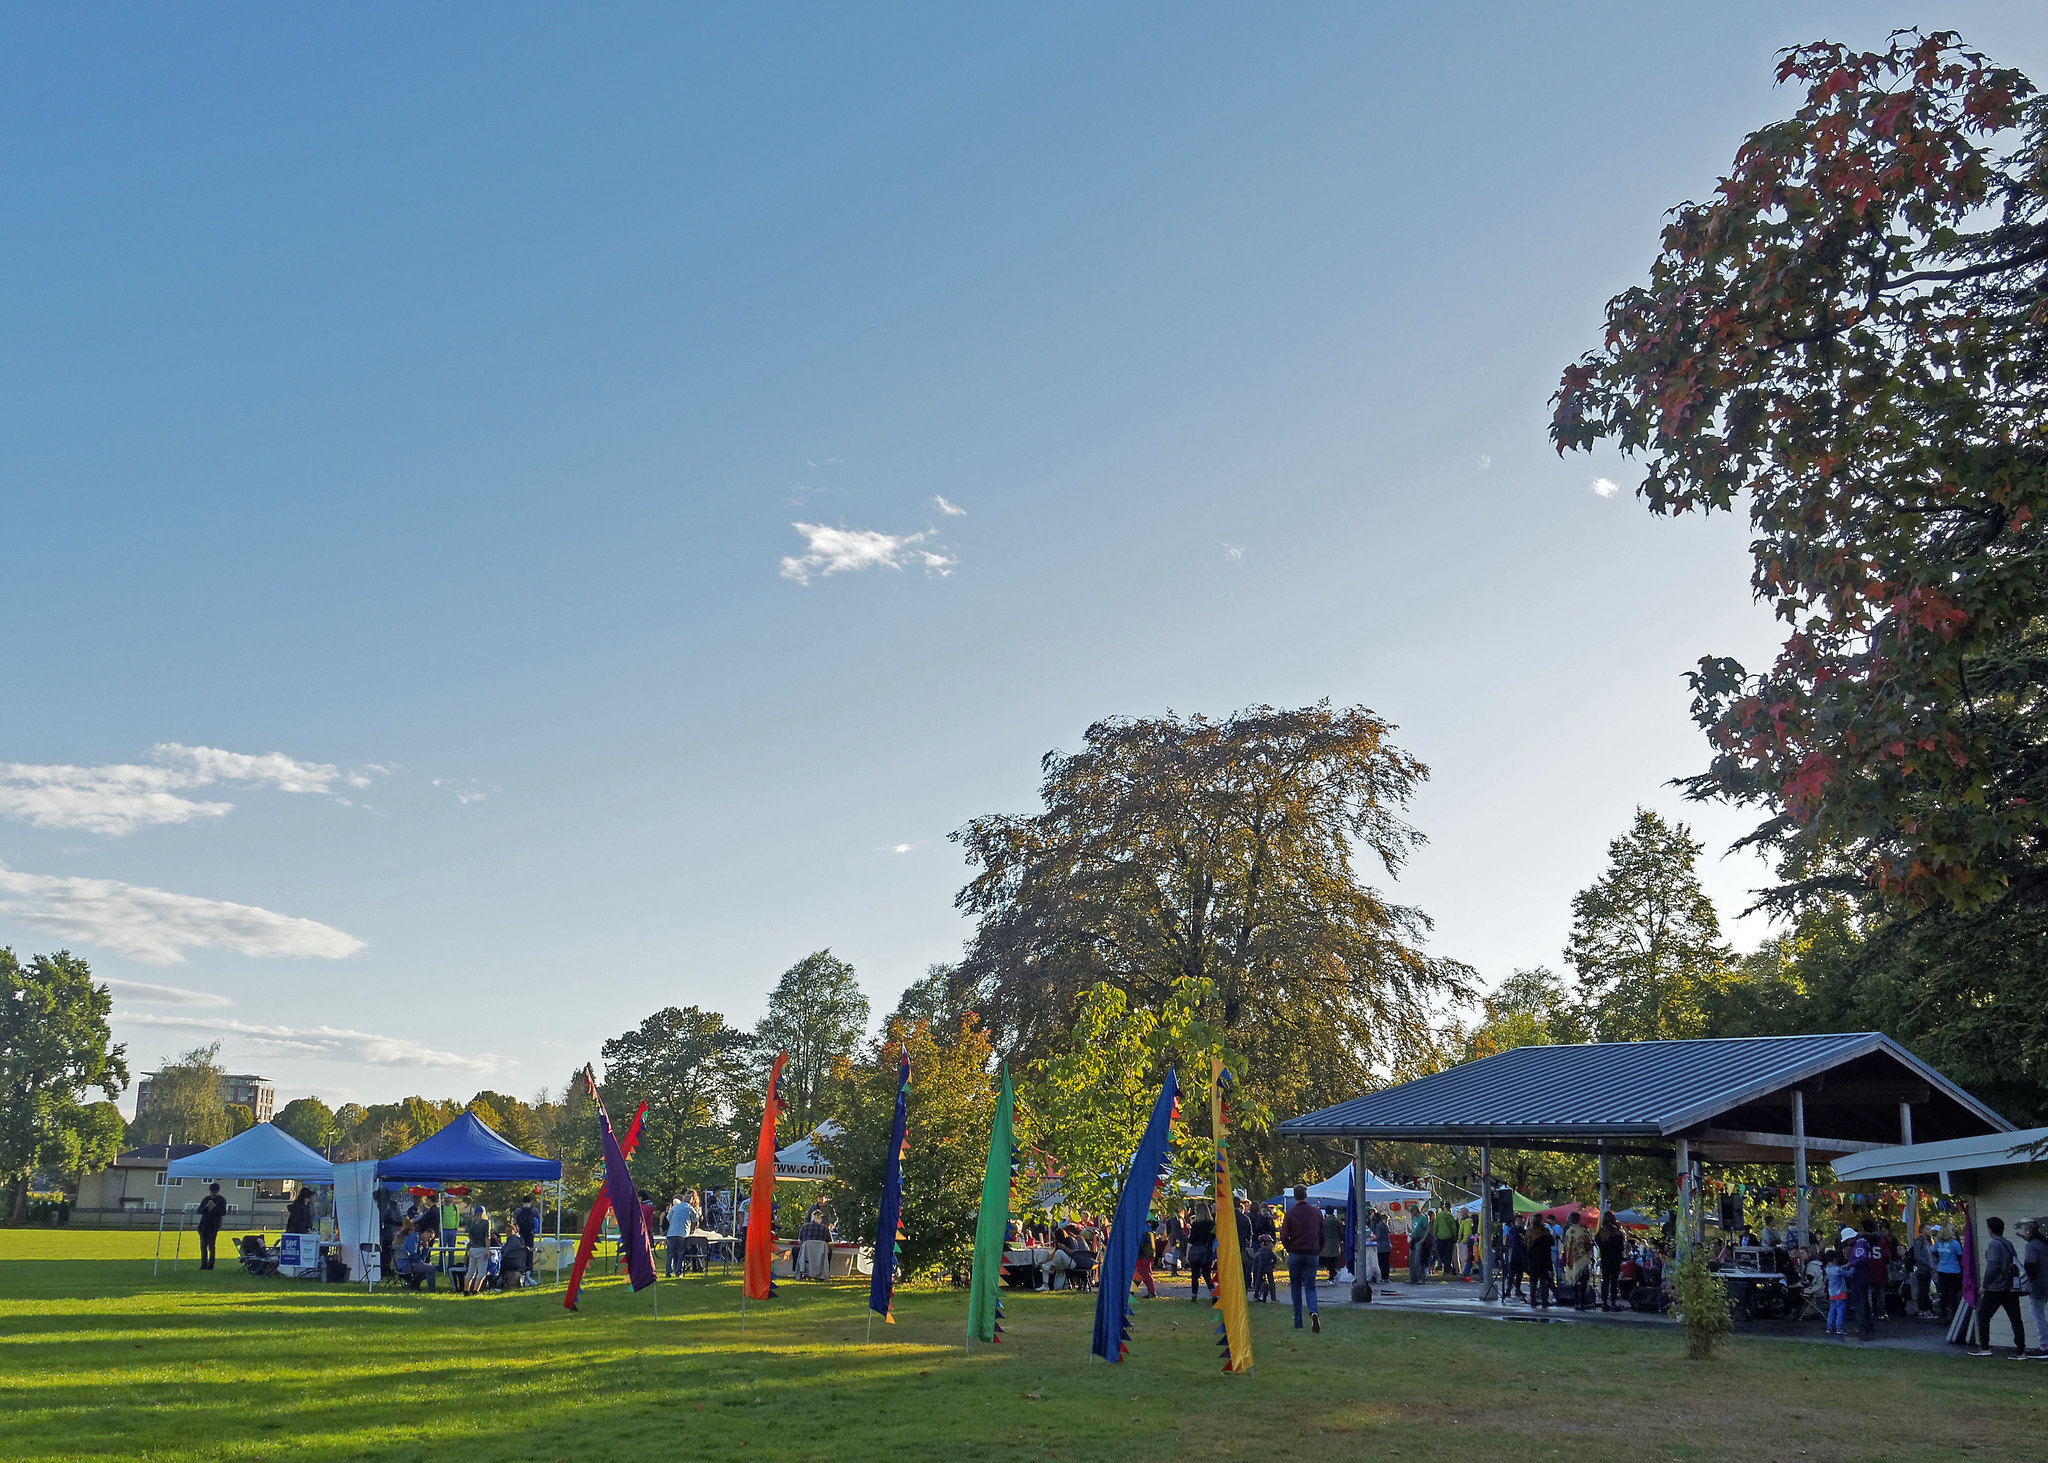 Harvest Fair at Slocan Park - Photo by Chao Cheng (2016)